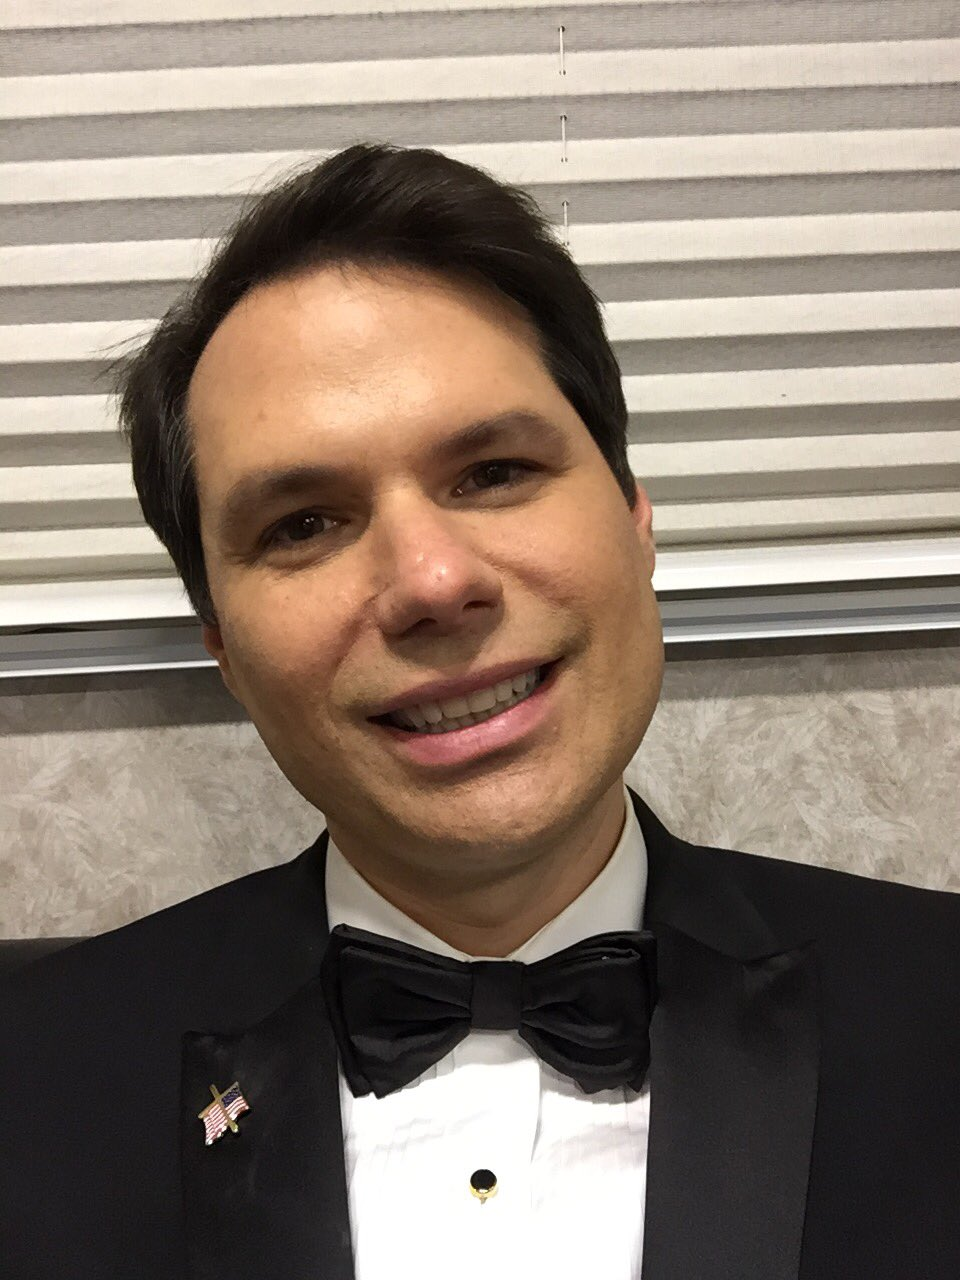 Vote Doug Jones like me, former NFL player and small business owner Michael Ian Black #9years2rings https://t.co/9wo59YuQng